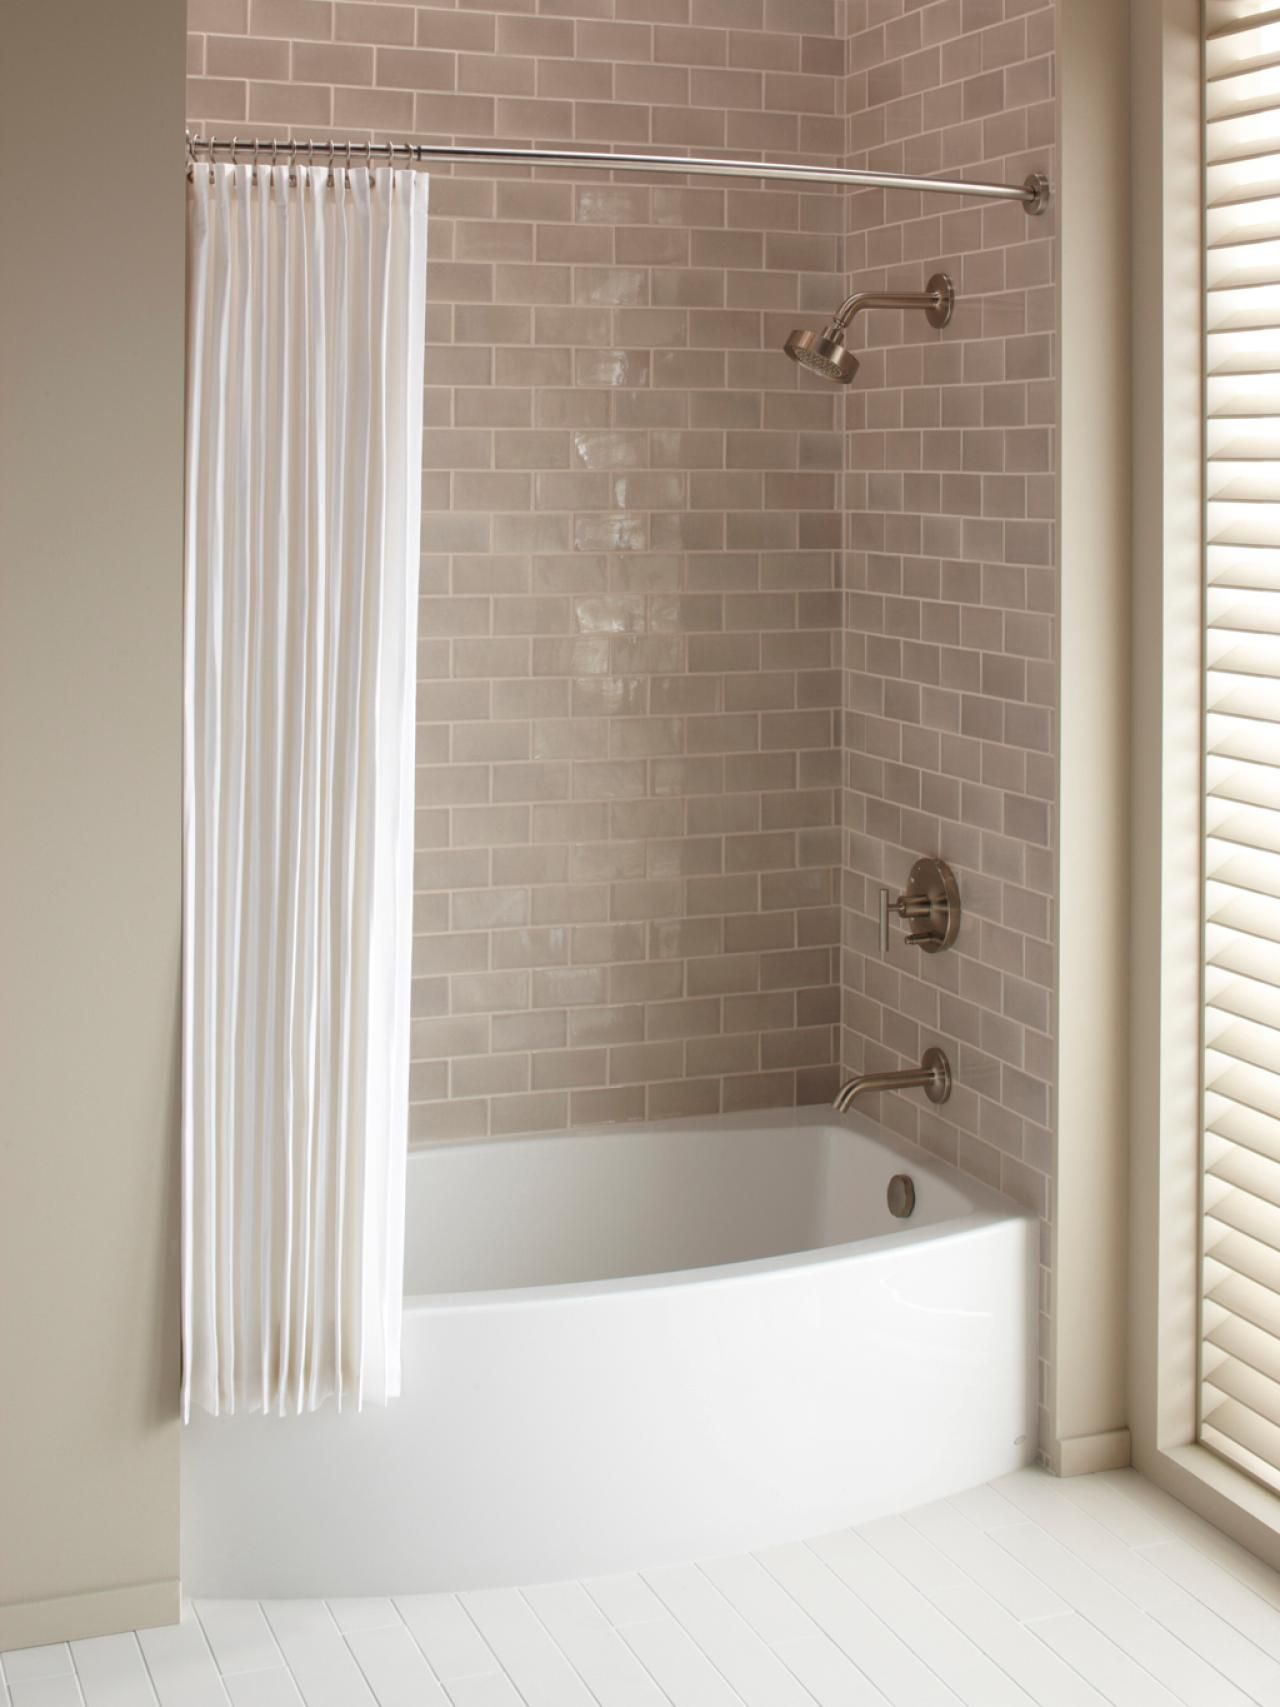 bathtub shower - Bathroom Tub And Shower Designs